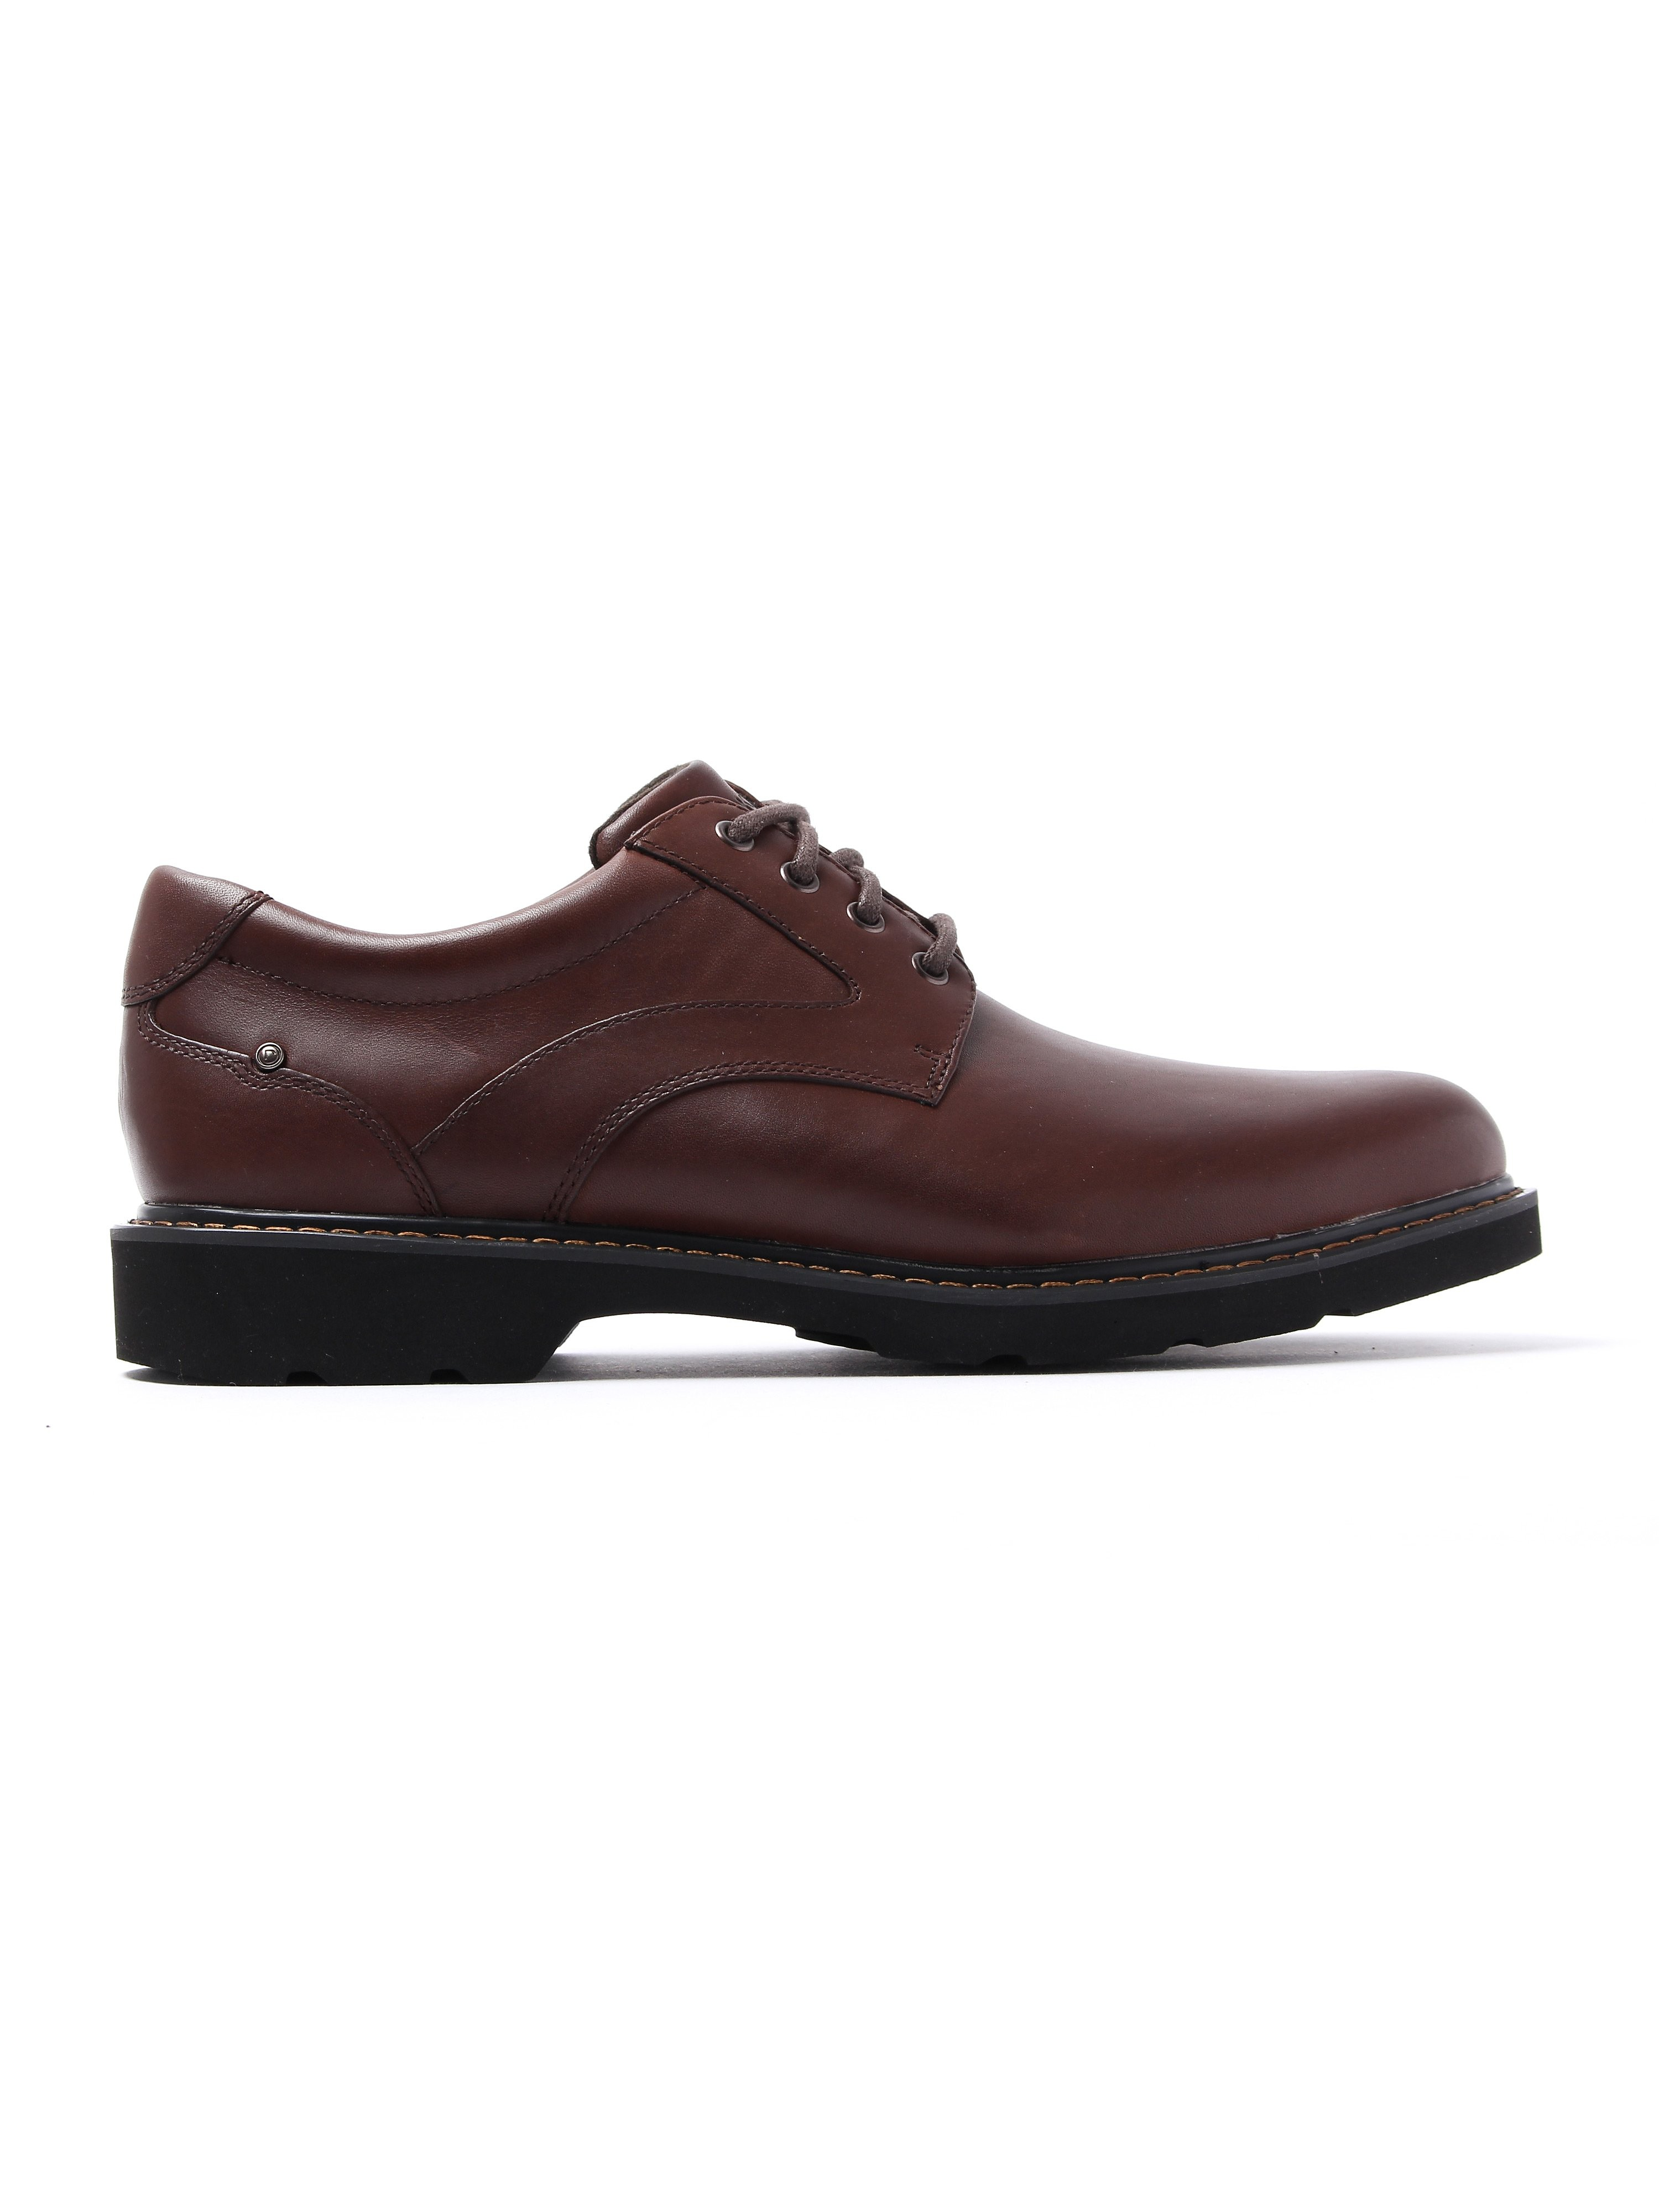 Rockport Men's Charles View Leather Derby Shoes - Brown